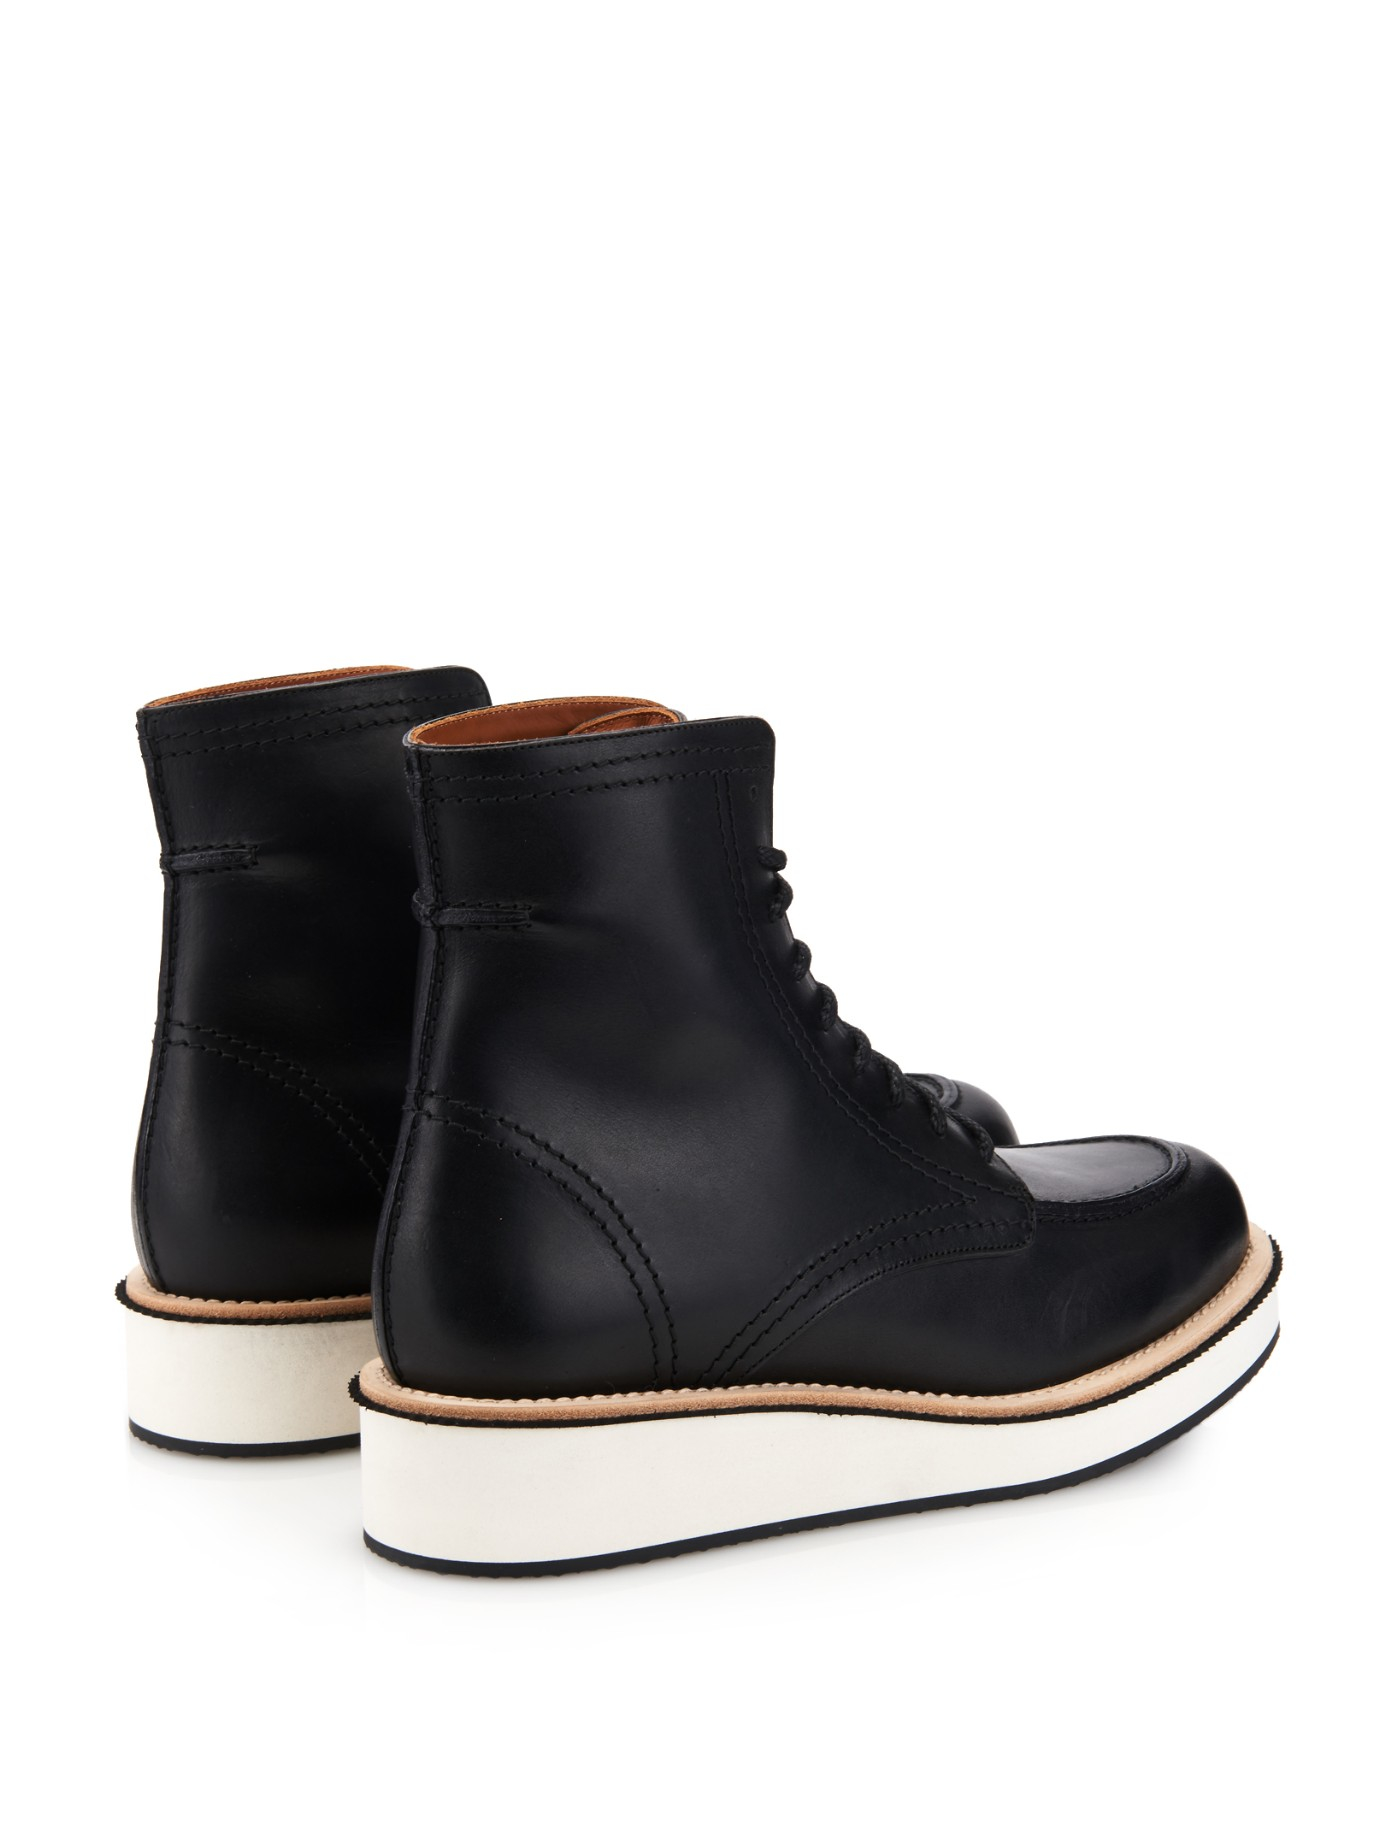 Lyst Givenchy Philippo Leather Ankle Boots In Black For Men